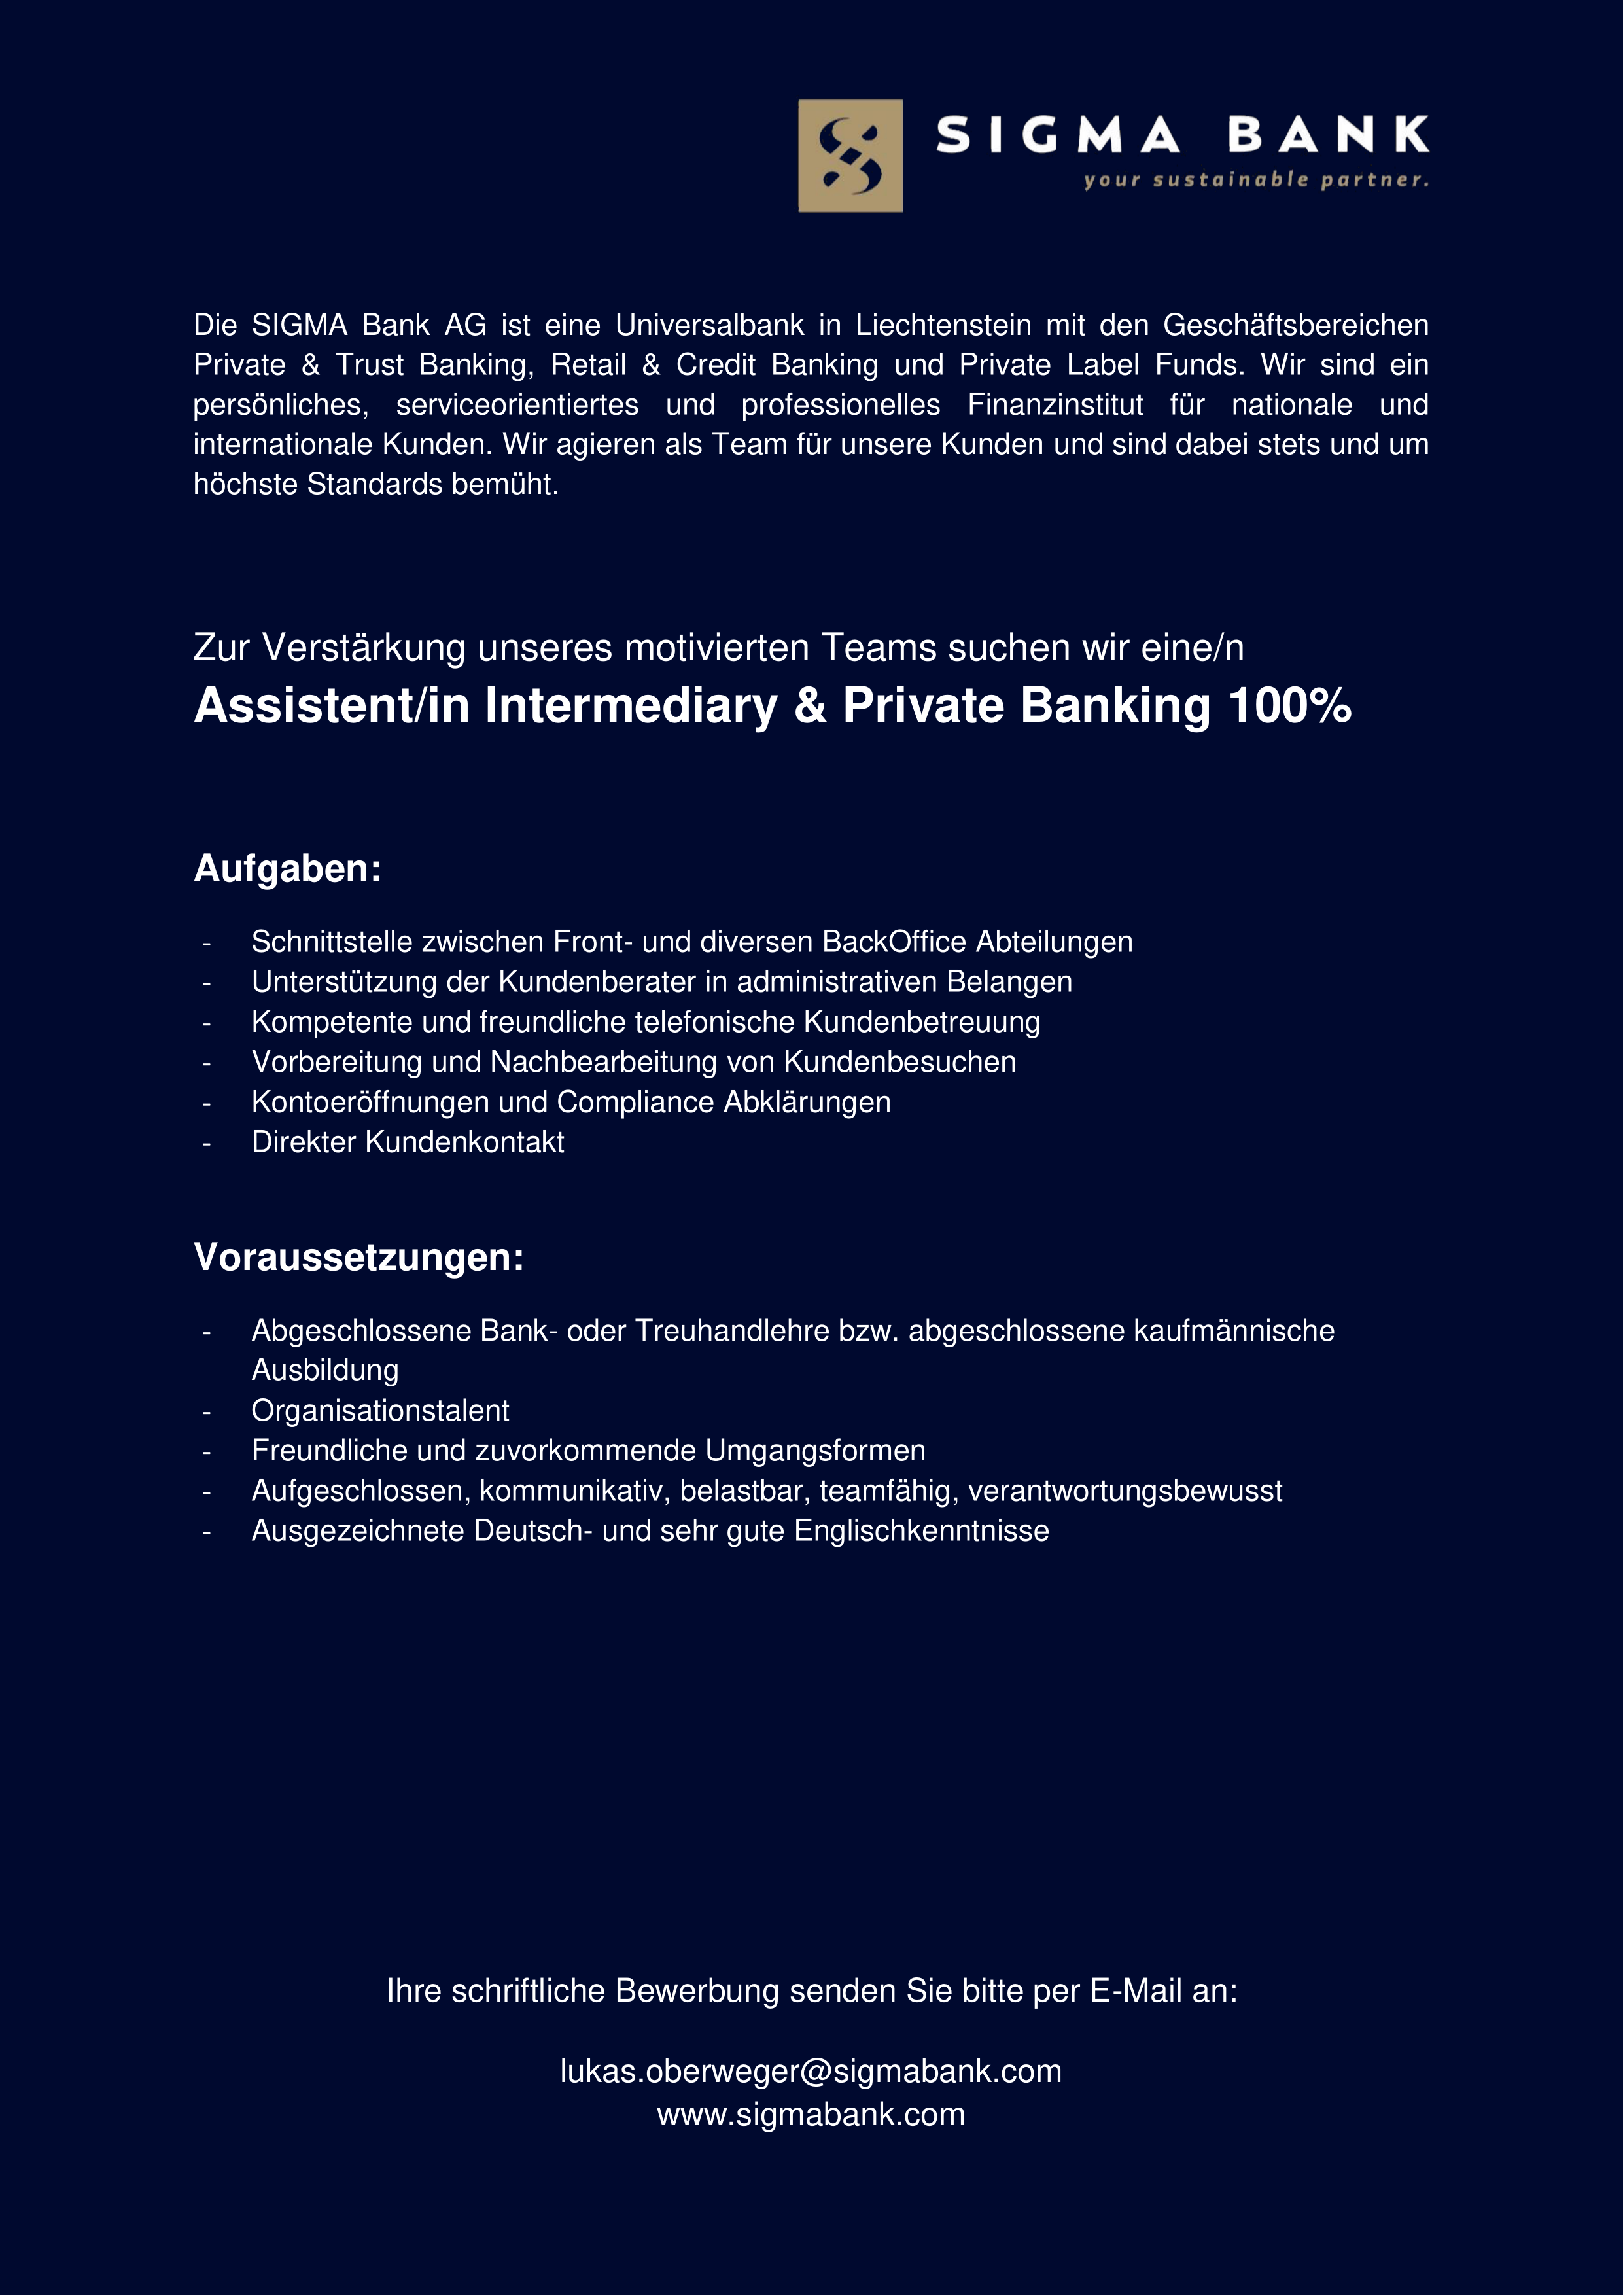 Assistent/in Intermediary & Private Banking 100%